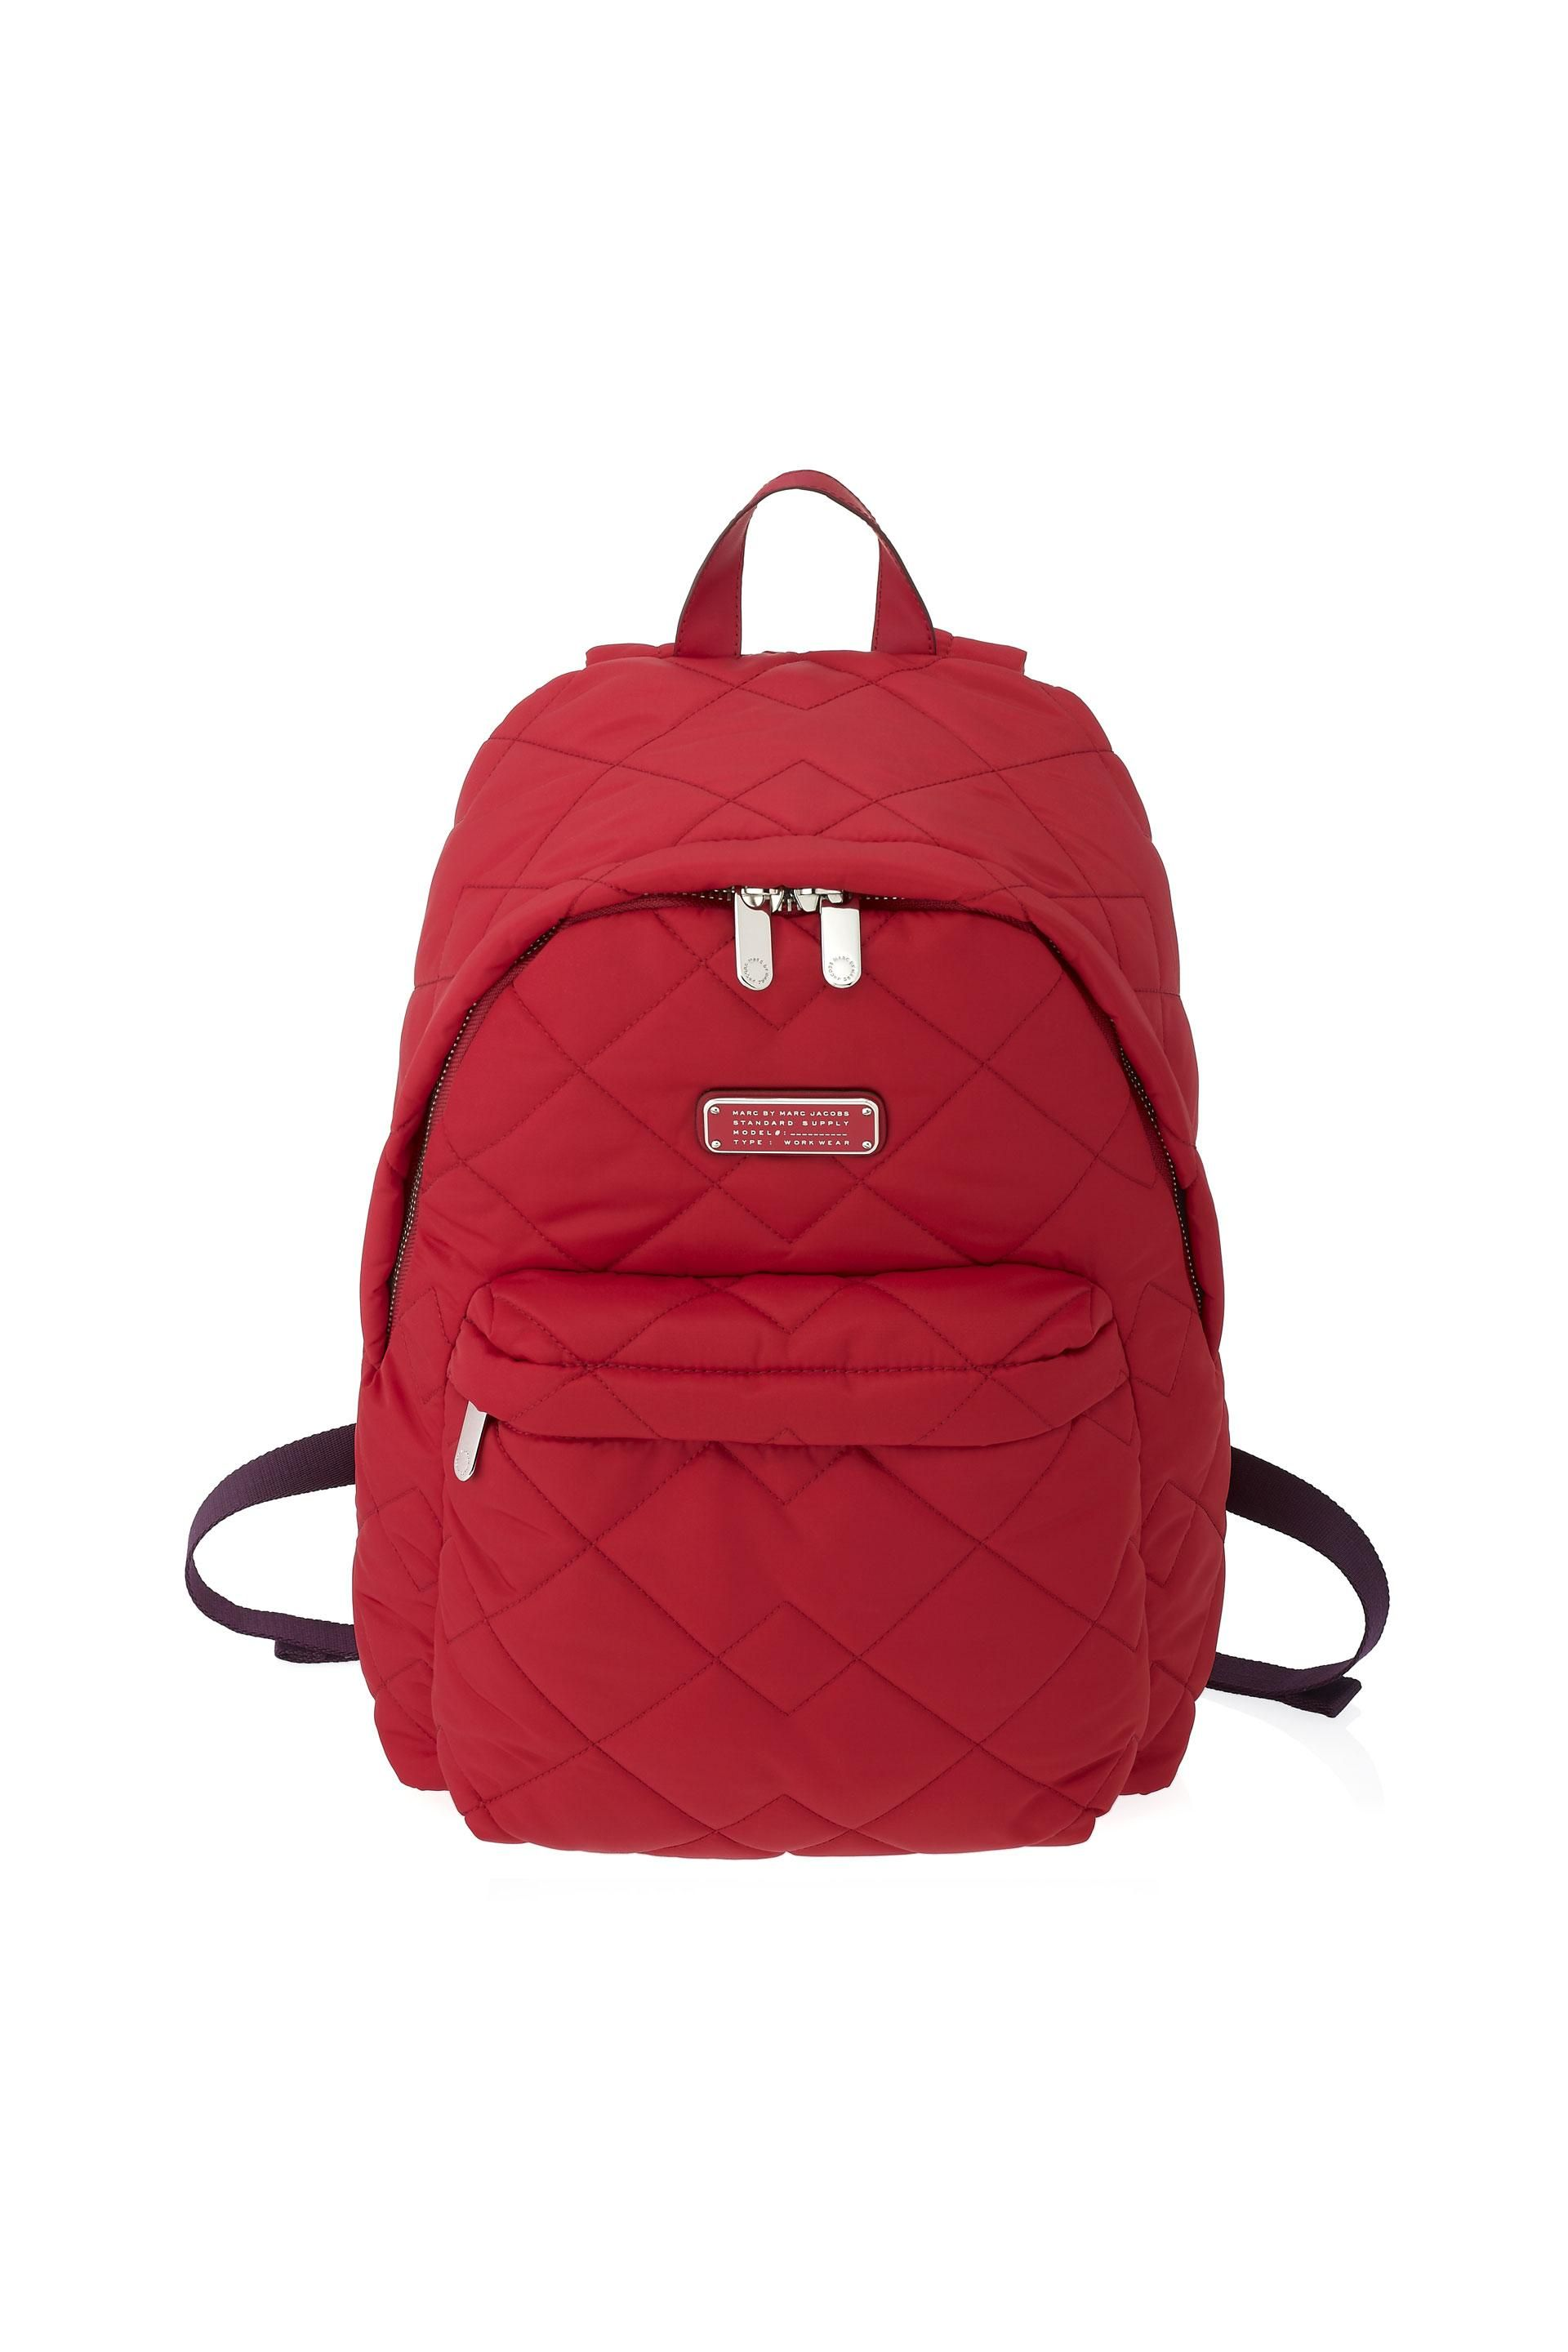 http://www.marcjacobs.com/crosby-quilt-backpack/M0005324.html?cgid=women-marc-by-marc-jacobs-bags-and-wallets&dwvar_M0005324_color=610#start=57